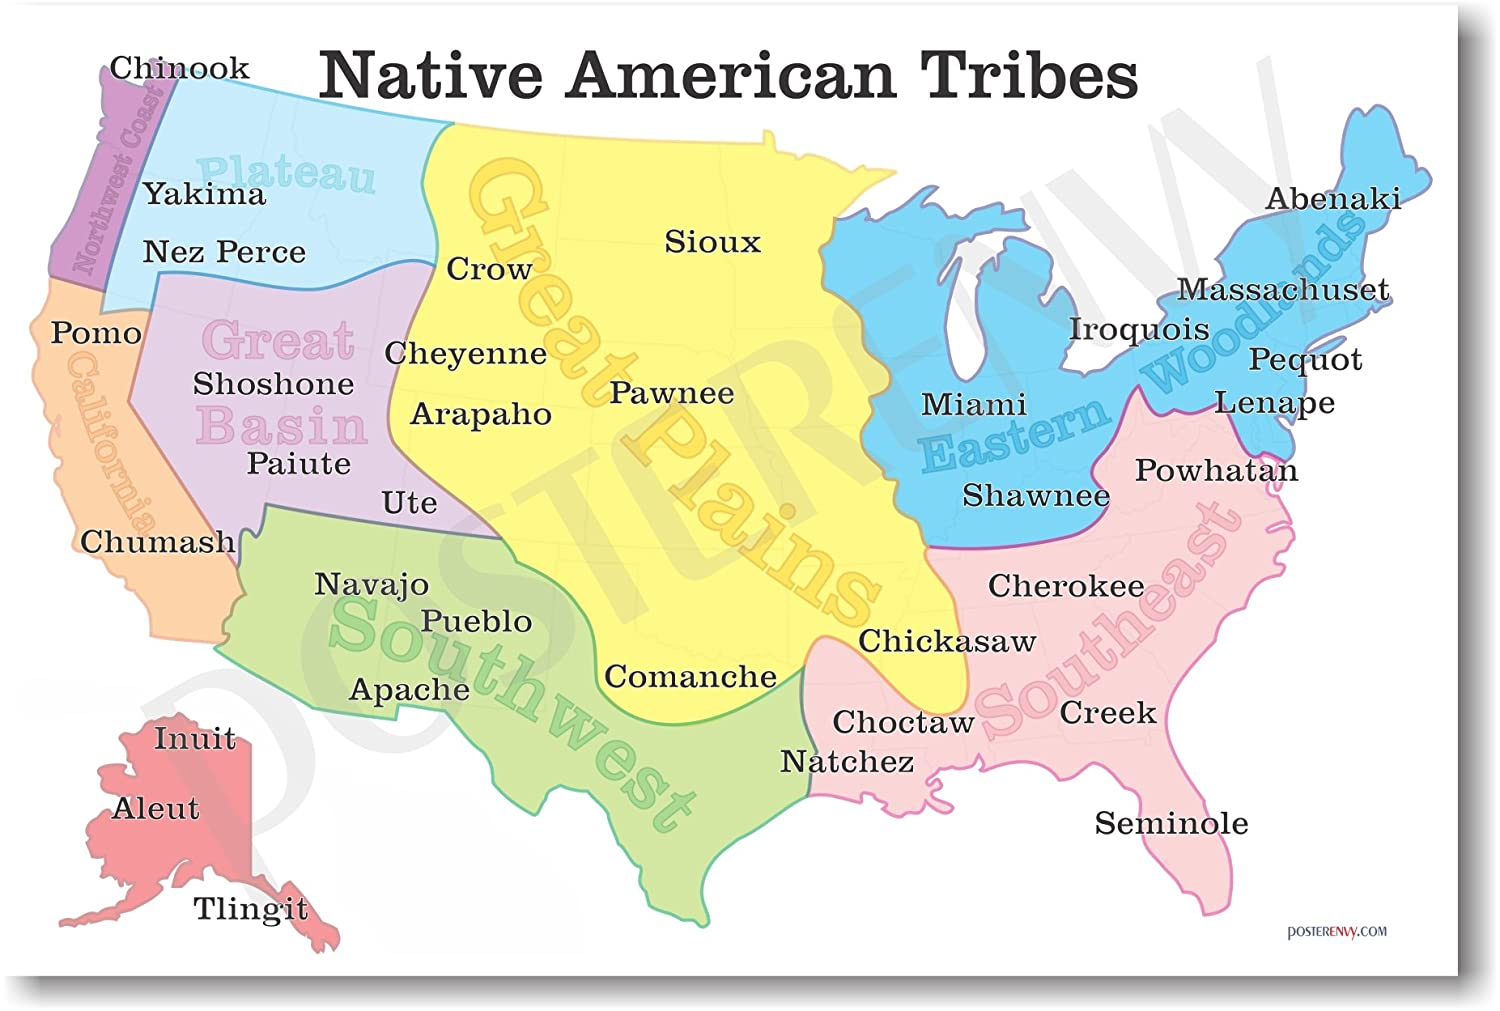 Amazon native american tribes map us history classroom amazon native american tribes map us history classroom school poster by posterenvy prints posters prints sciox Image collections